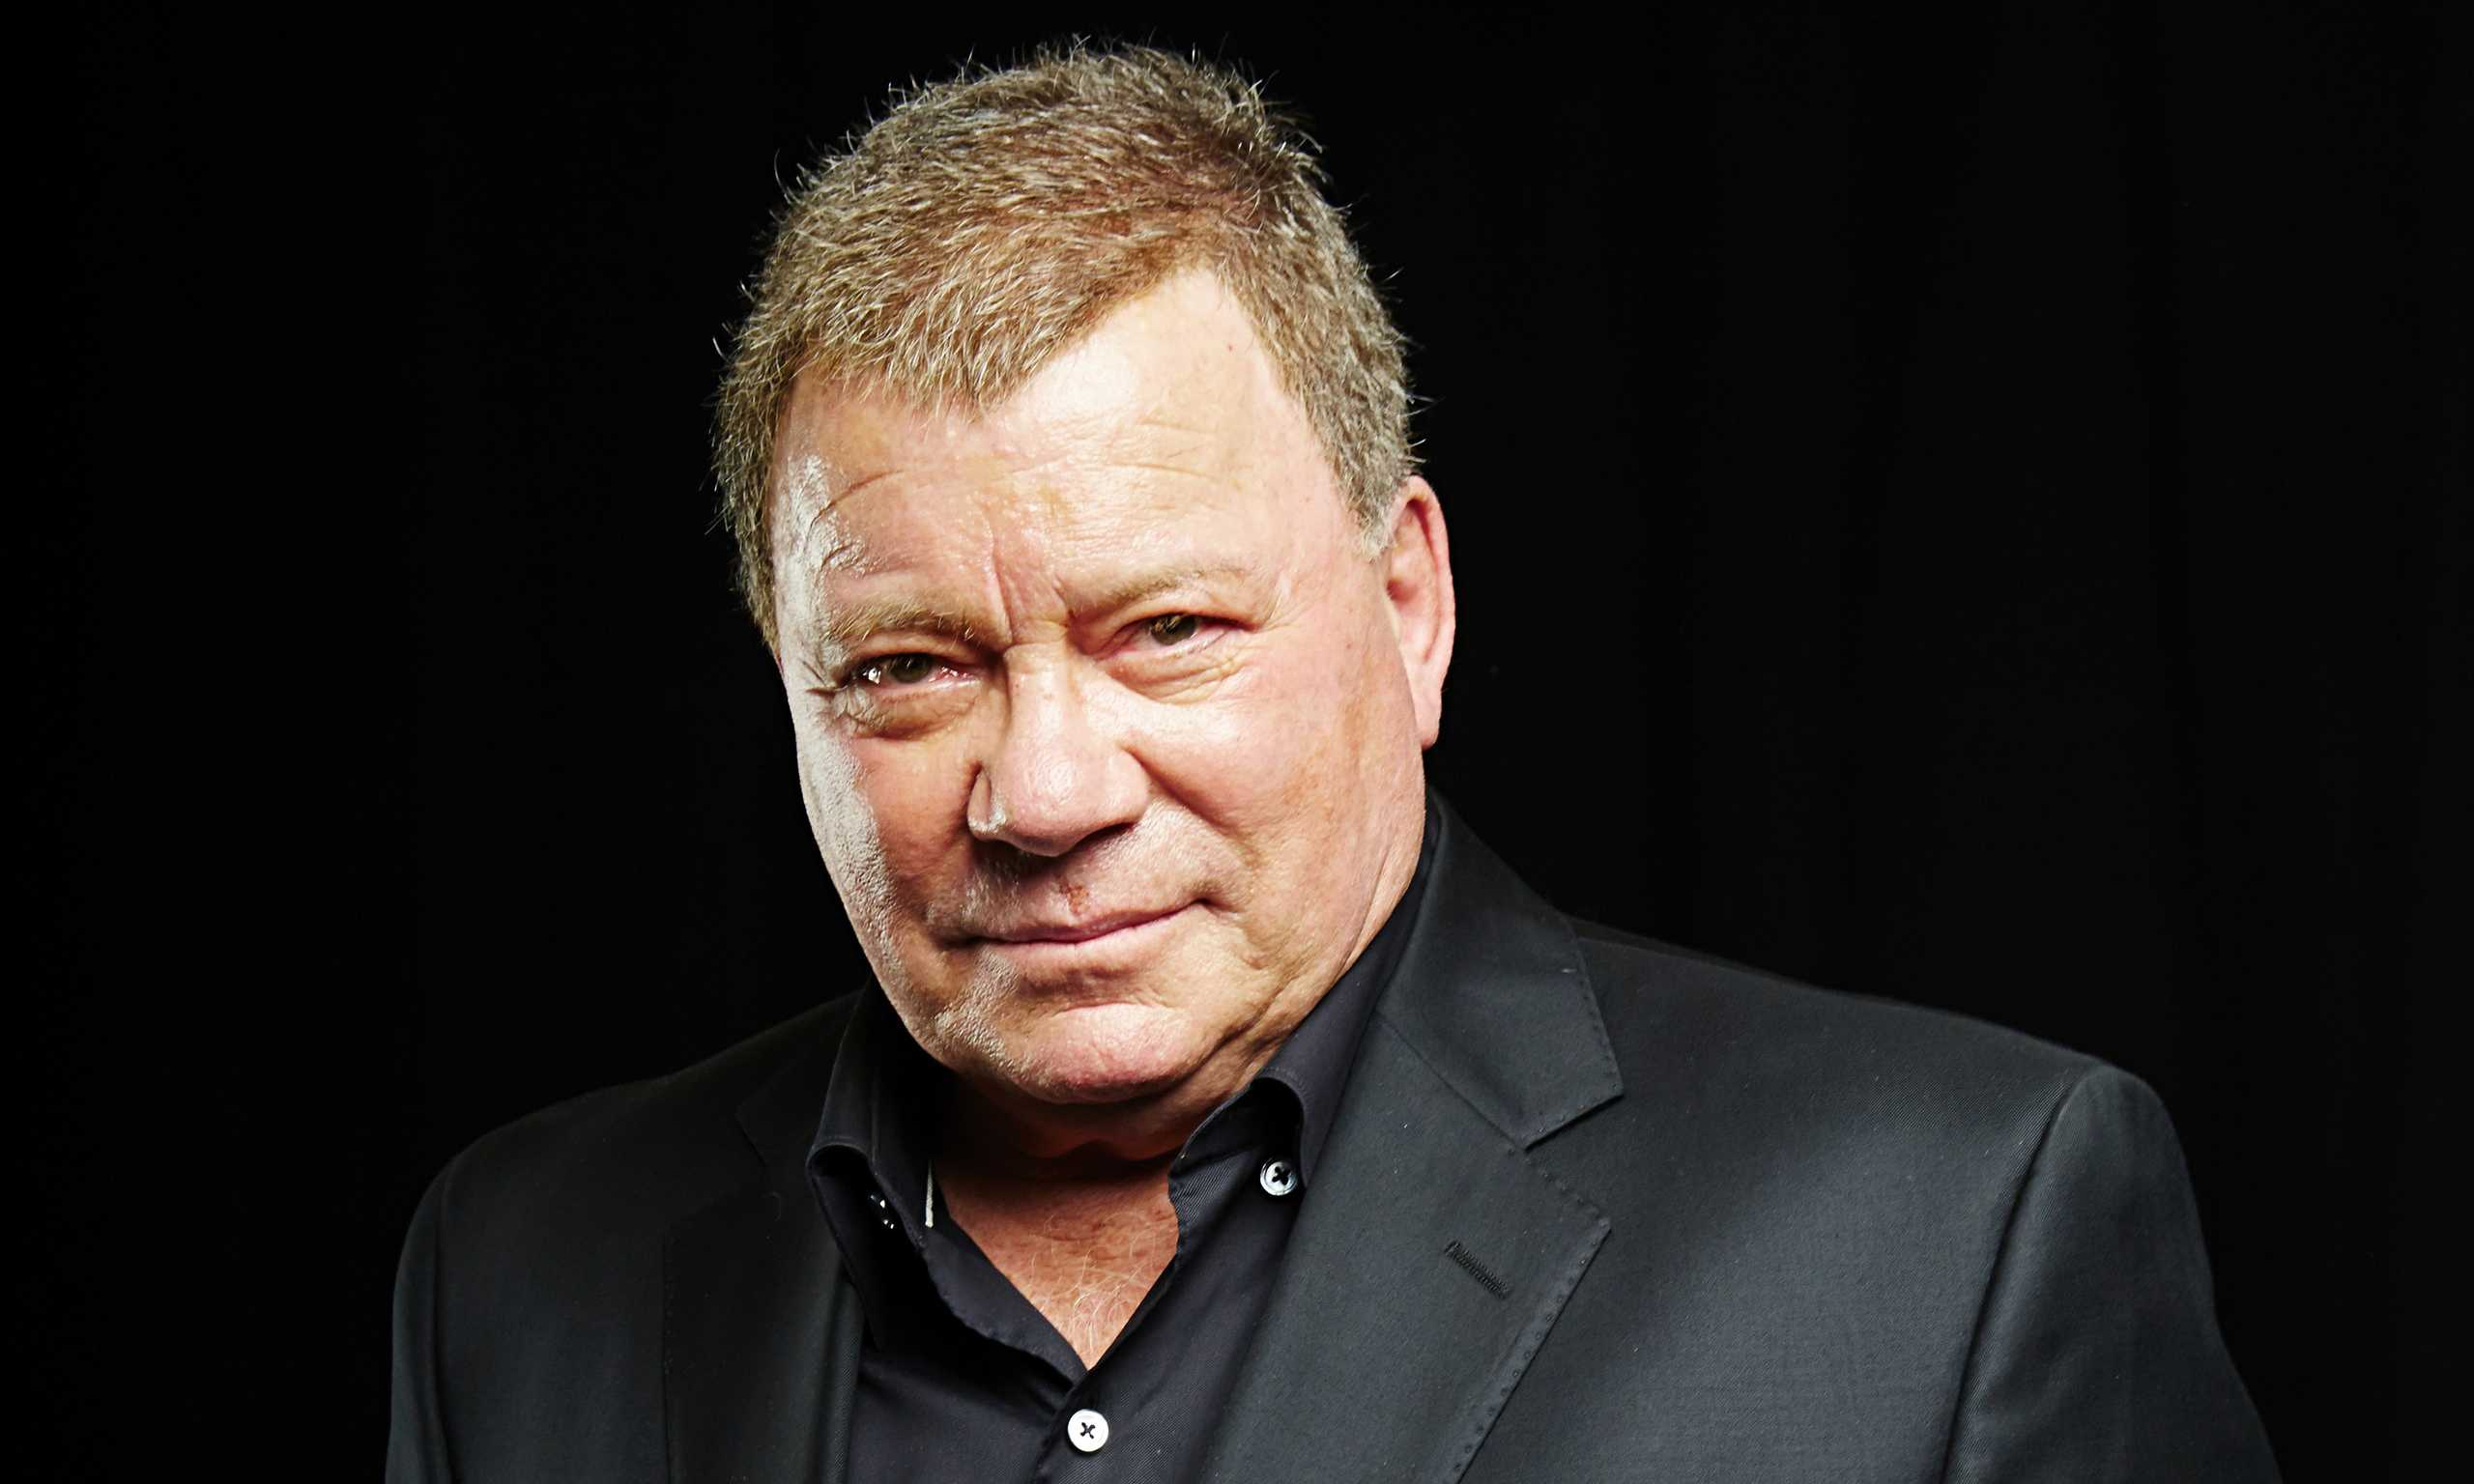 William Shatner en guerre avec le blogue féministe The Mary Sue